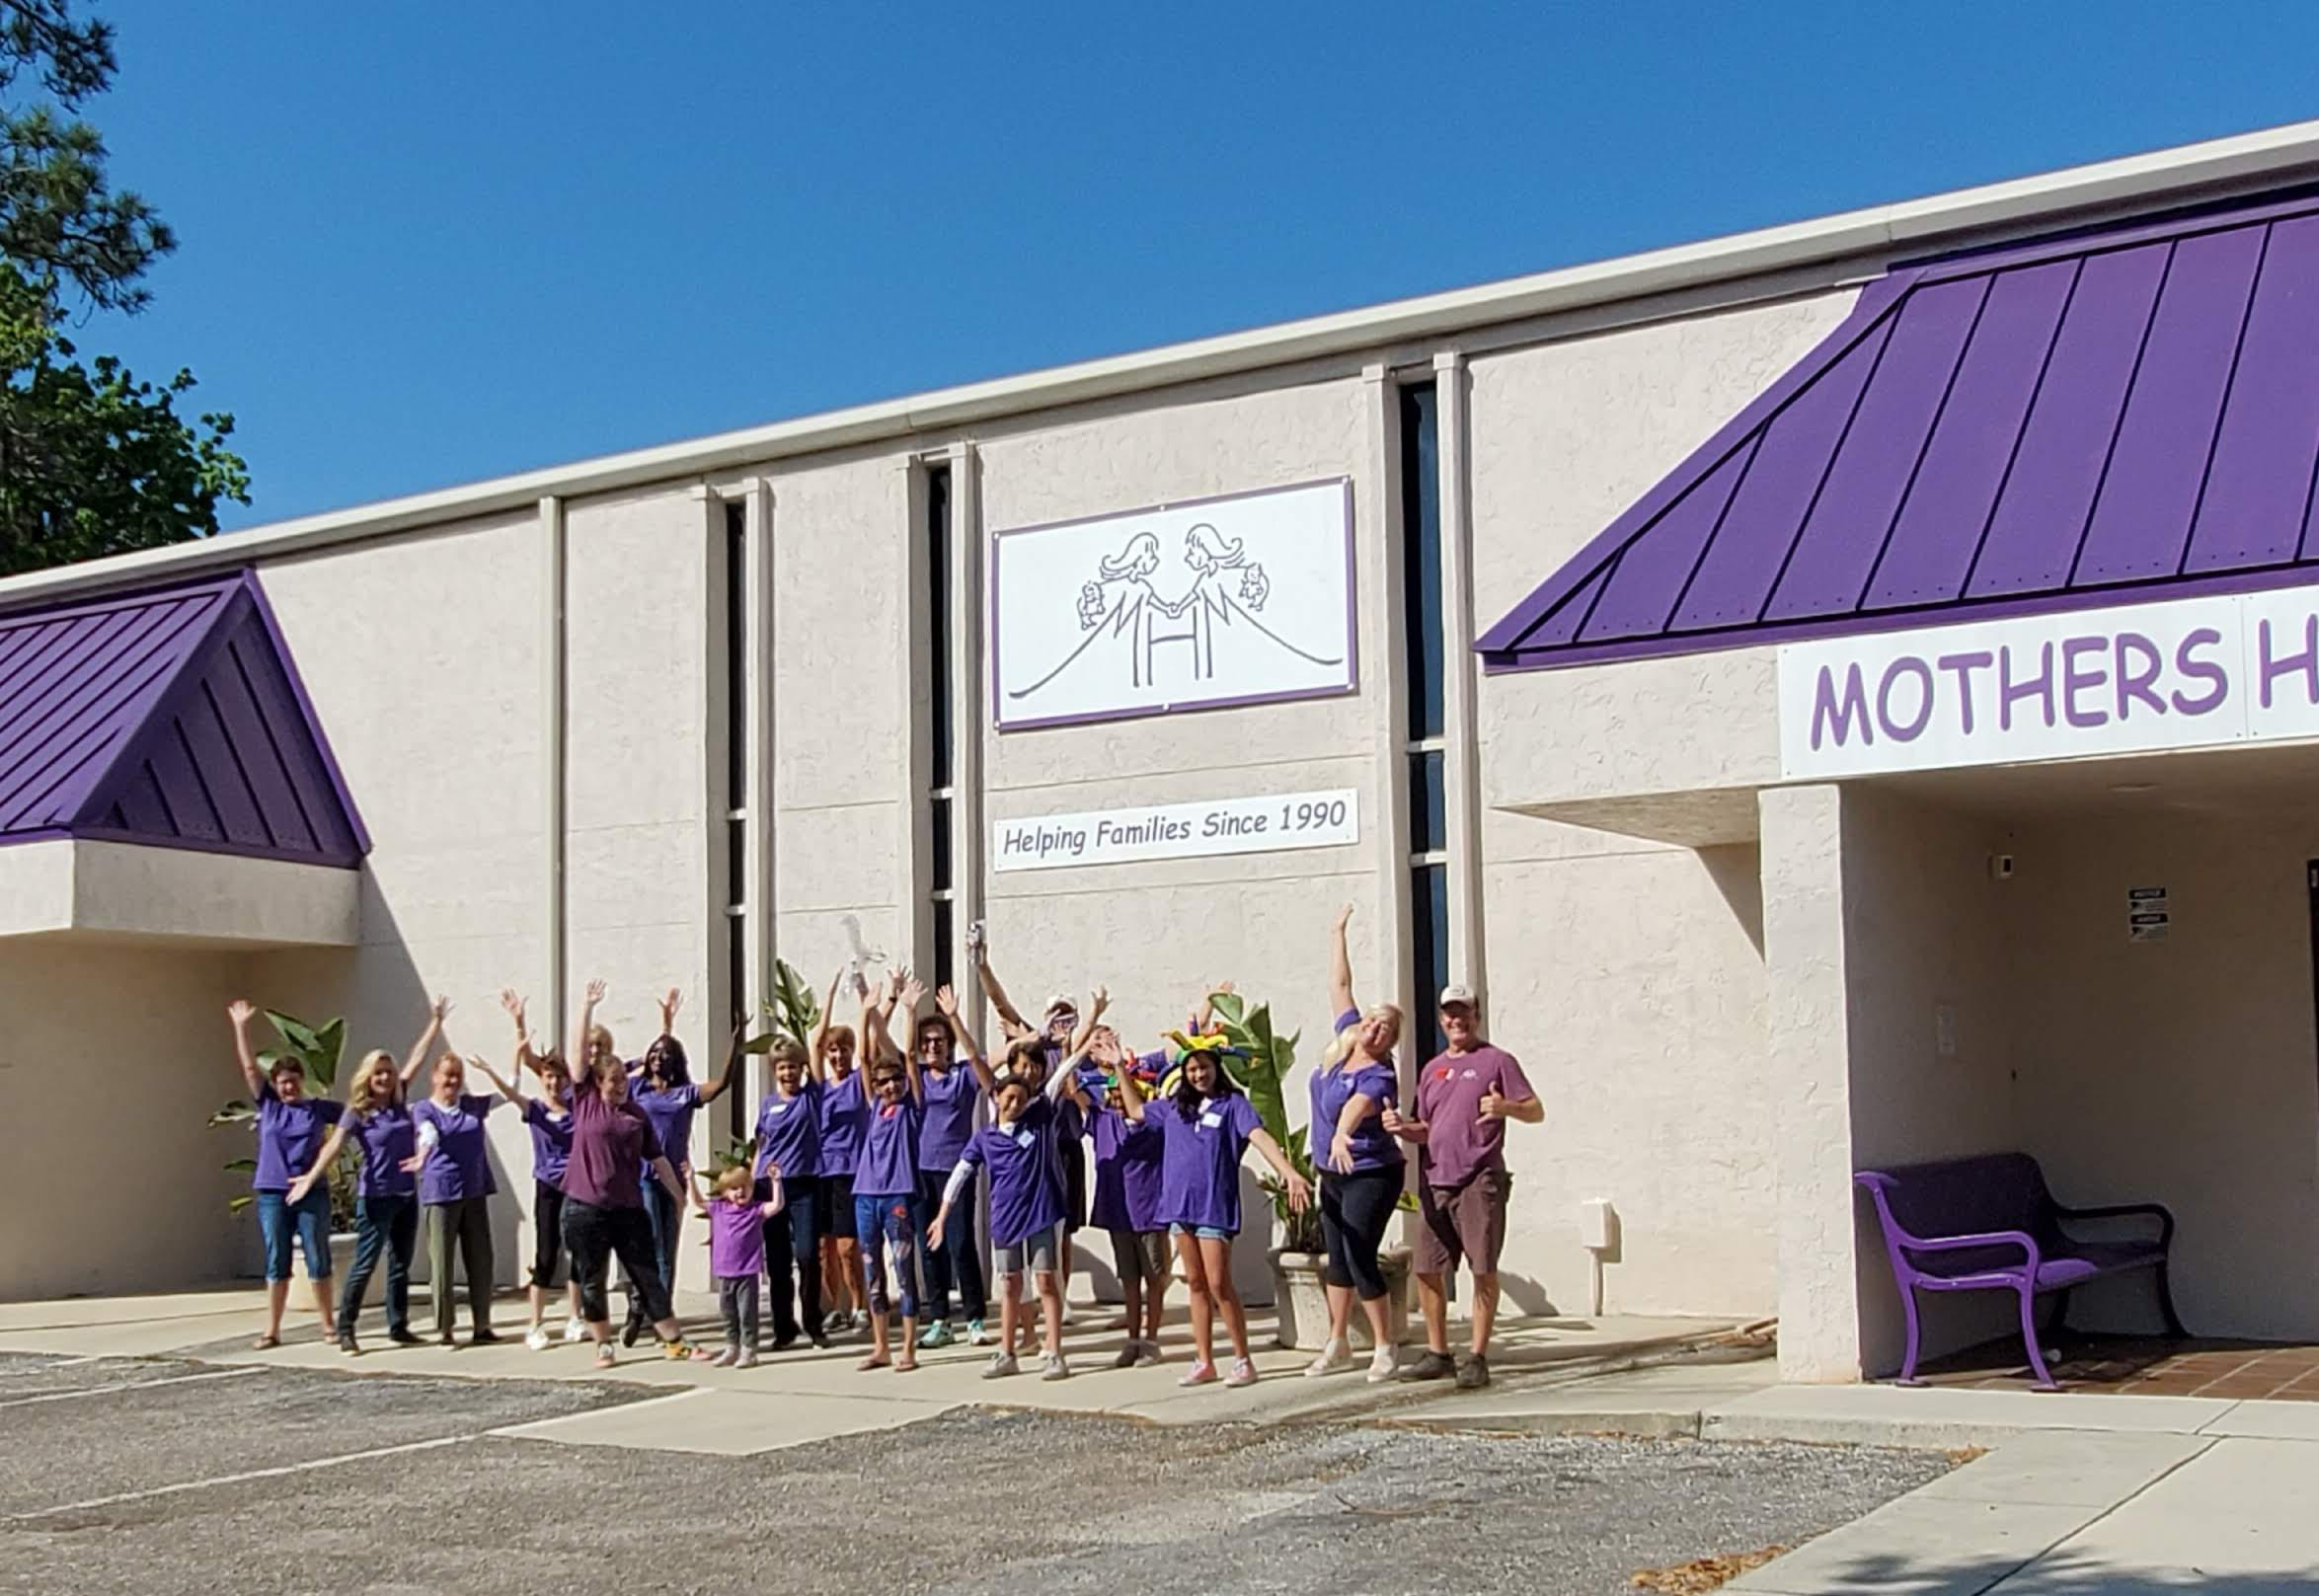 A Grassroots Effort Expands to Help Moms Support Moms